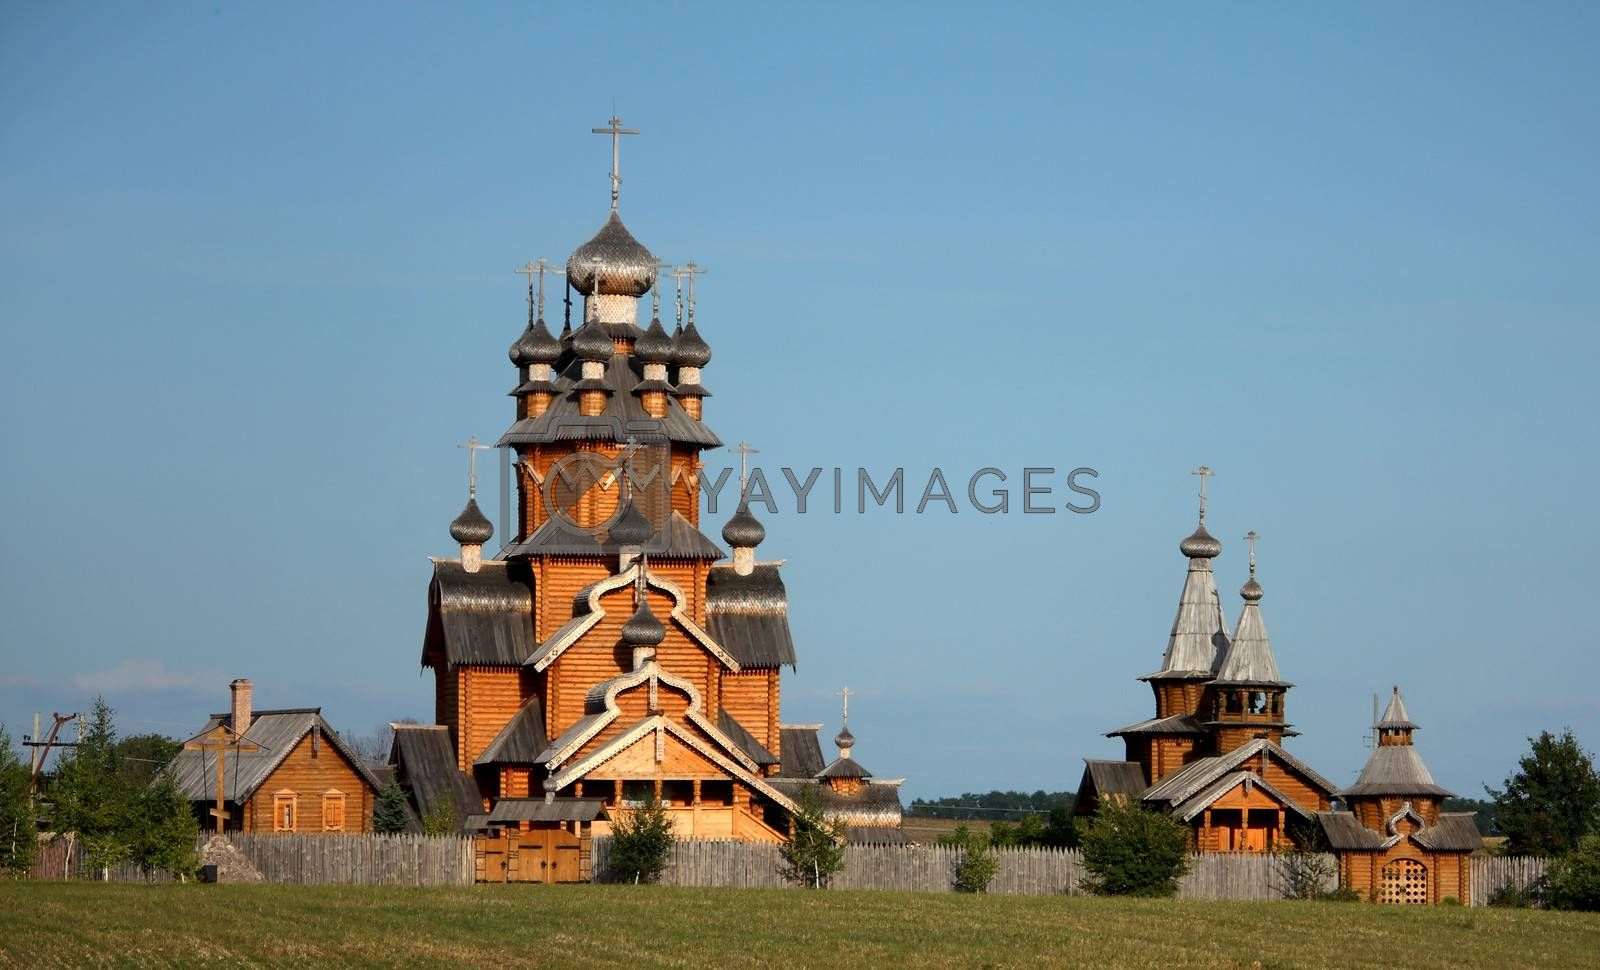 Village with traditional wooden houses and church